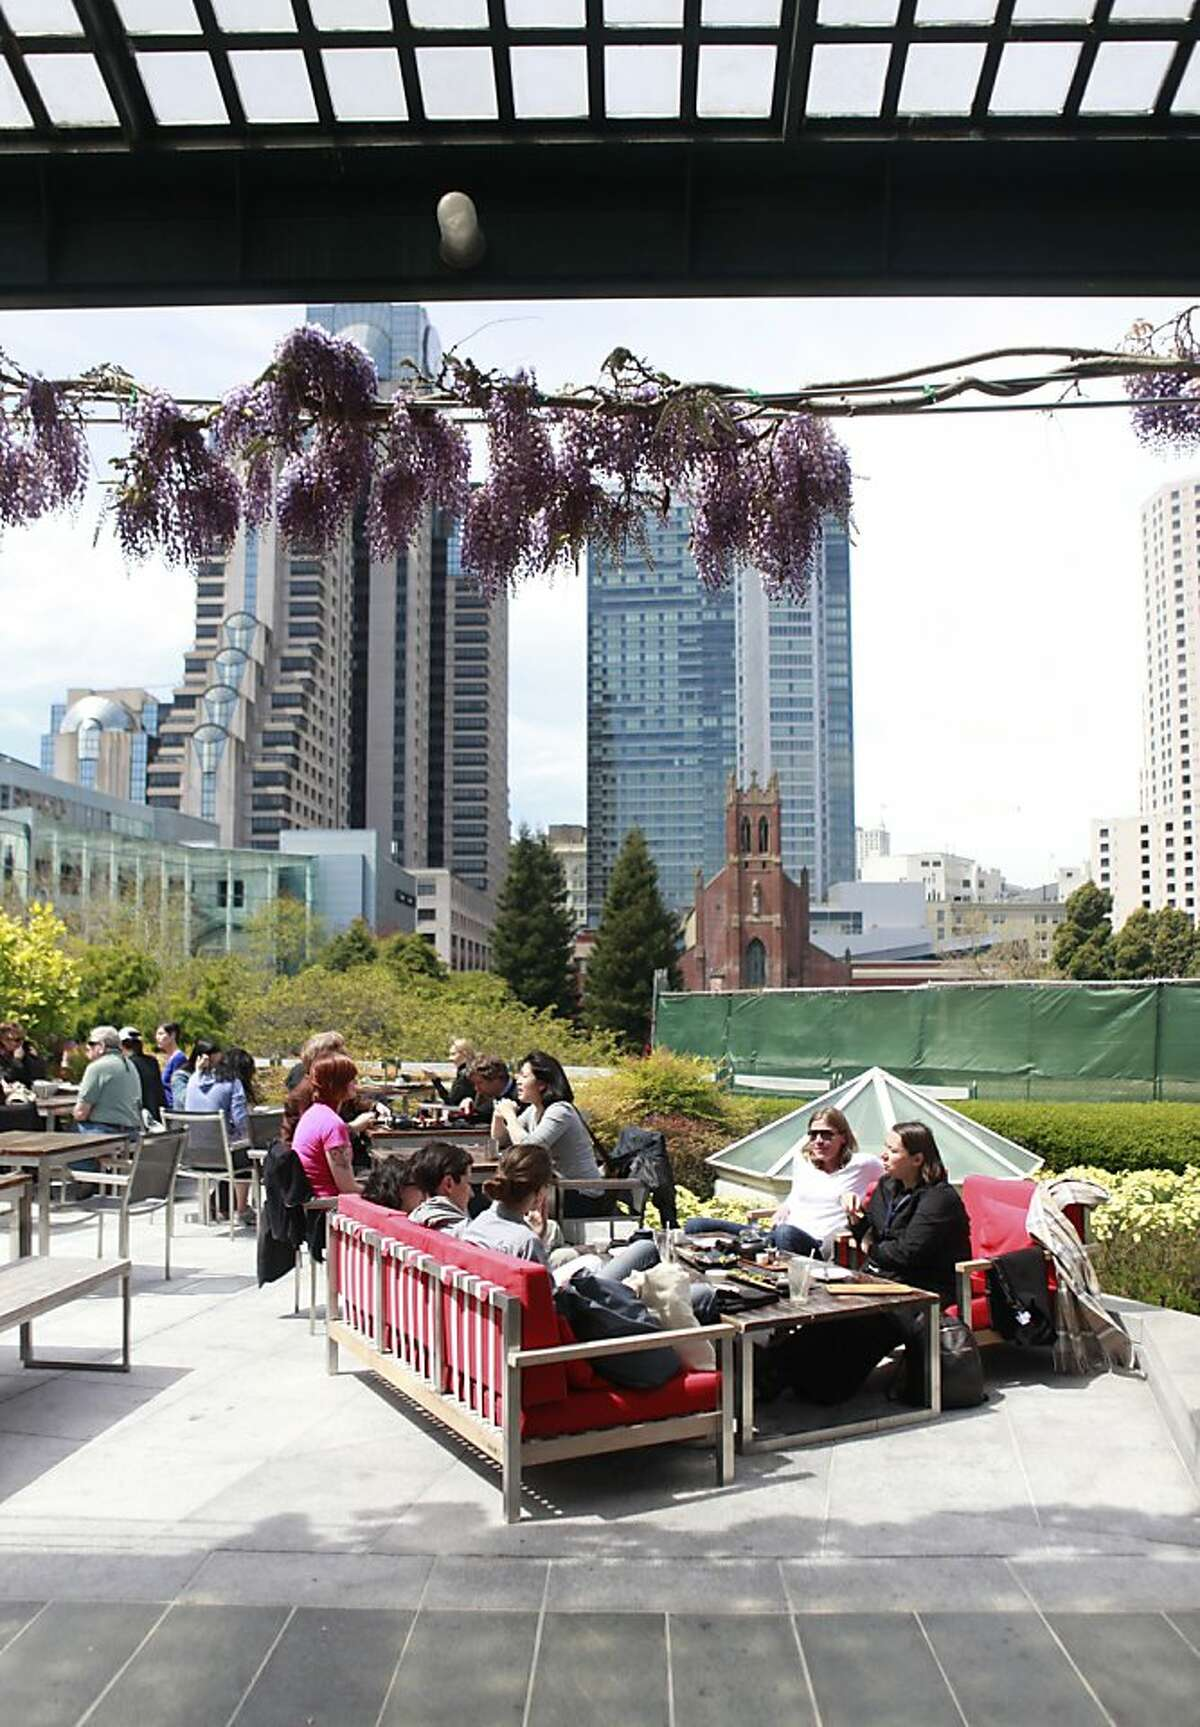 Outdoor dining terrace at the Yerba Buena Gardens and Metreon in San Francisco, California on Wednesday, April 18th, 2012